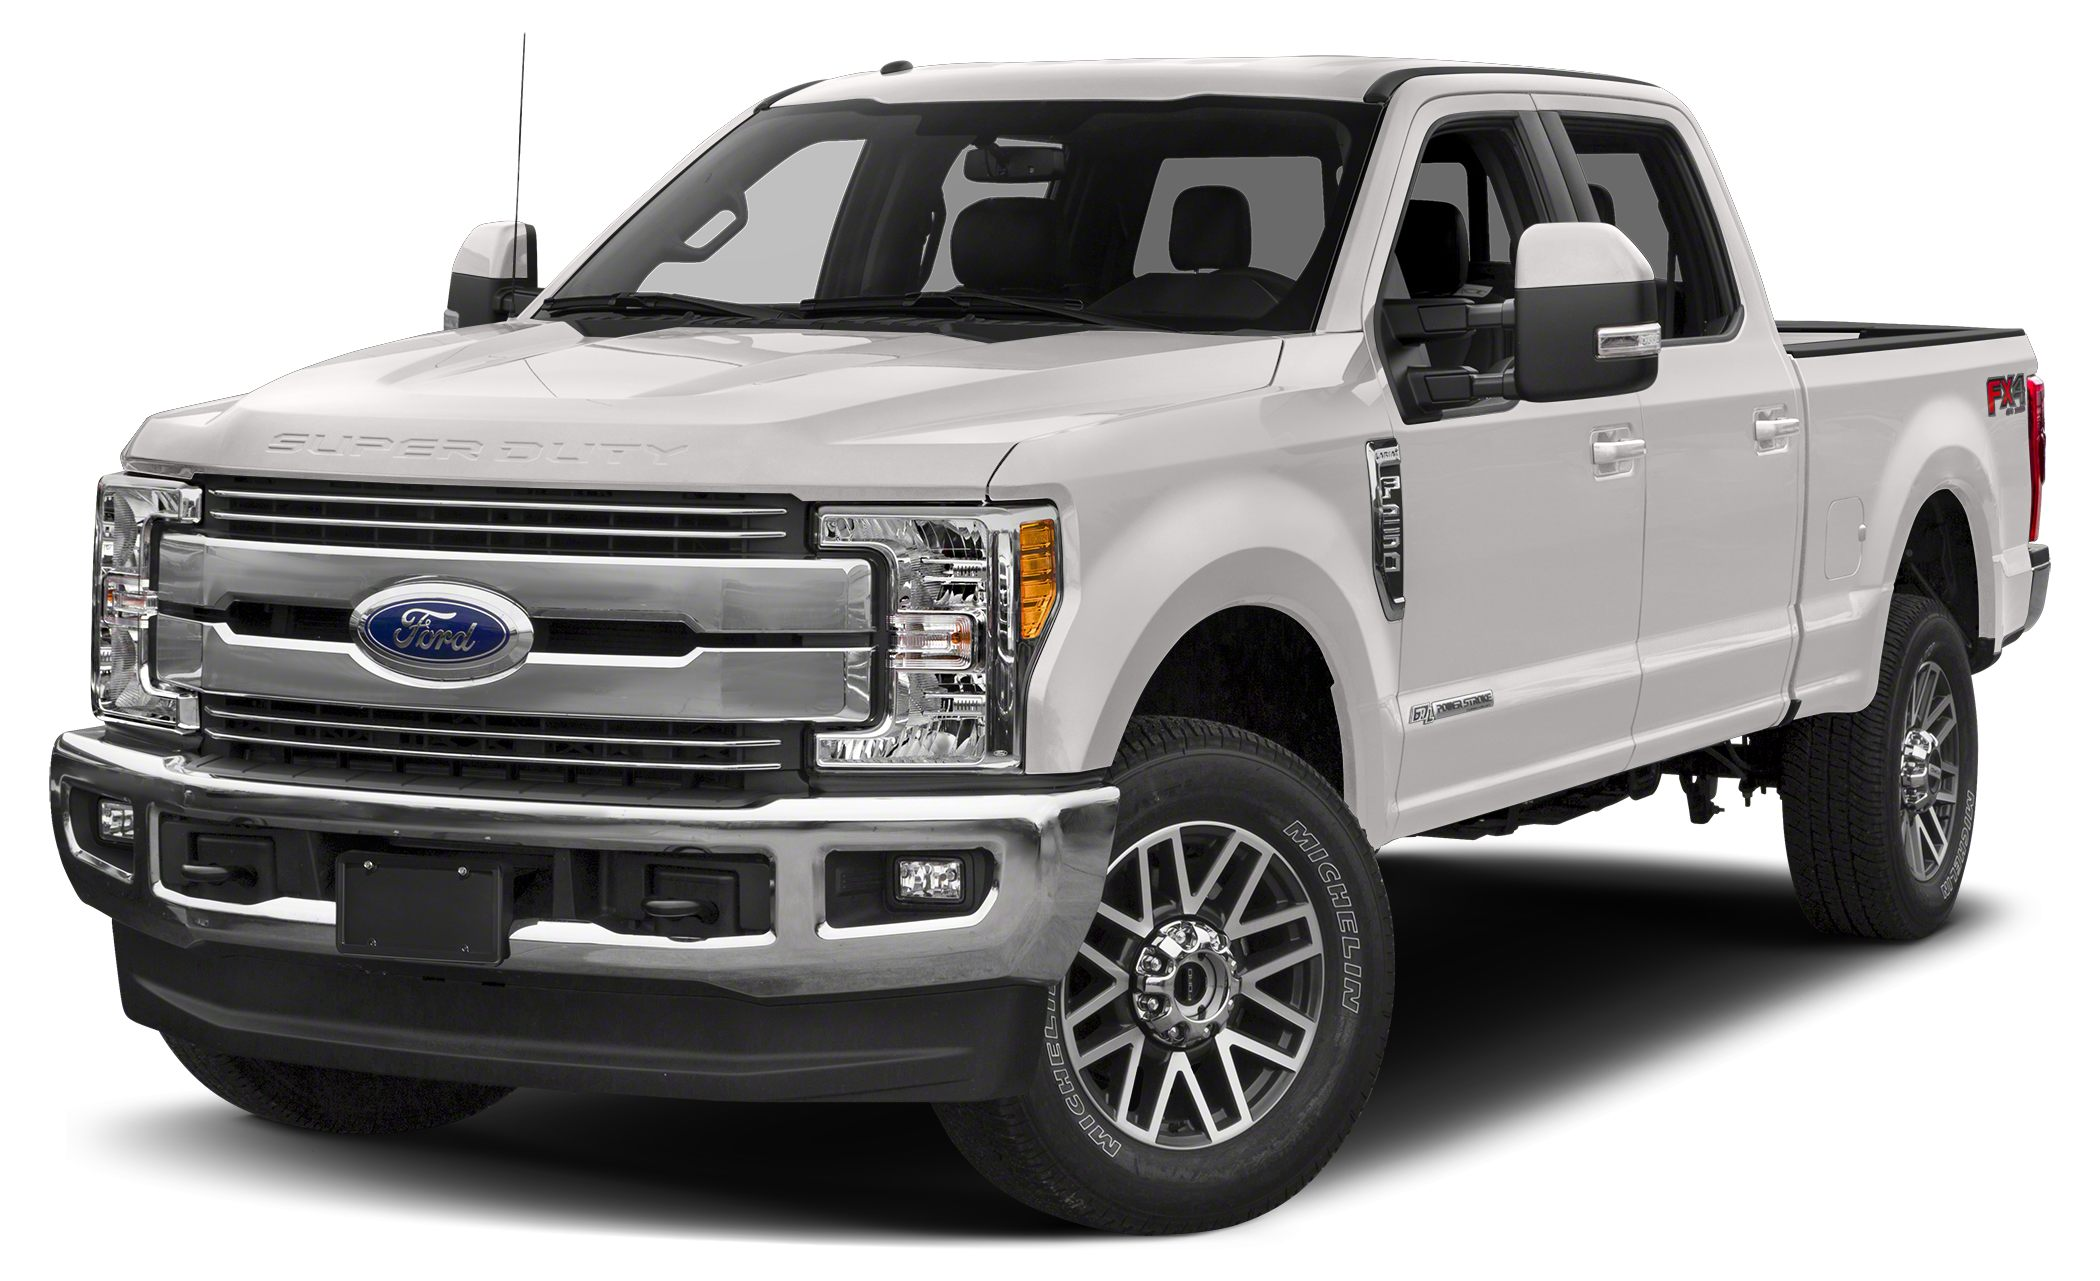 2017 Ford F-250 Lariat Price includes 750 - Ford Credit Retail Bonus Customer Cash Exp 07052